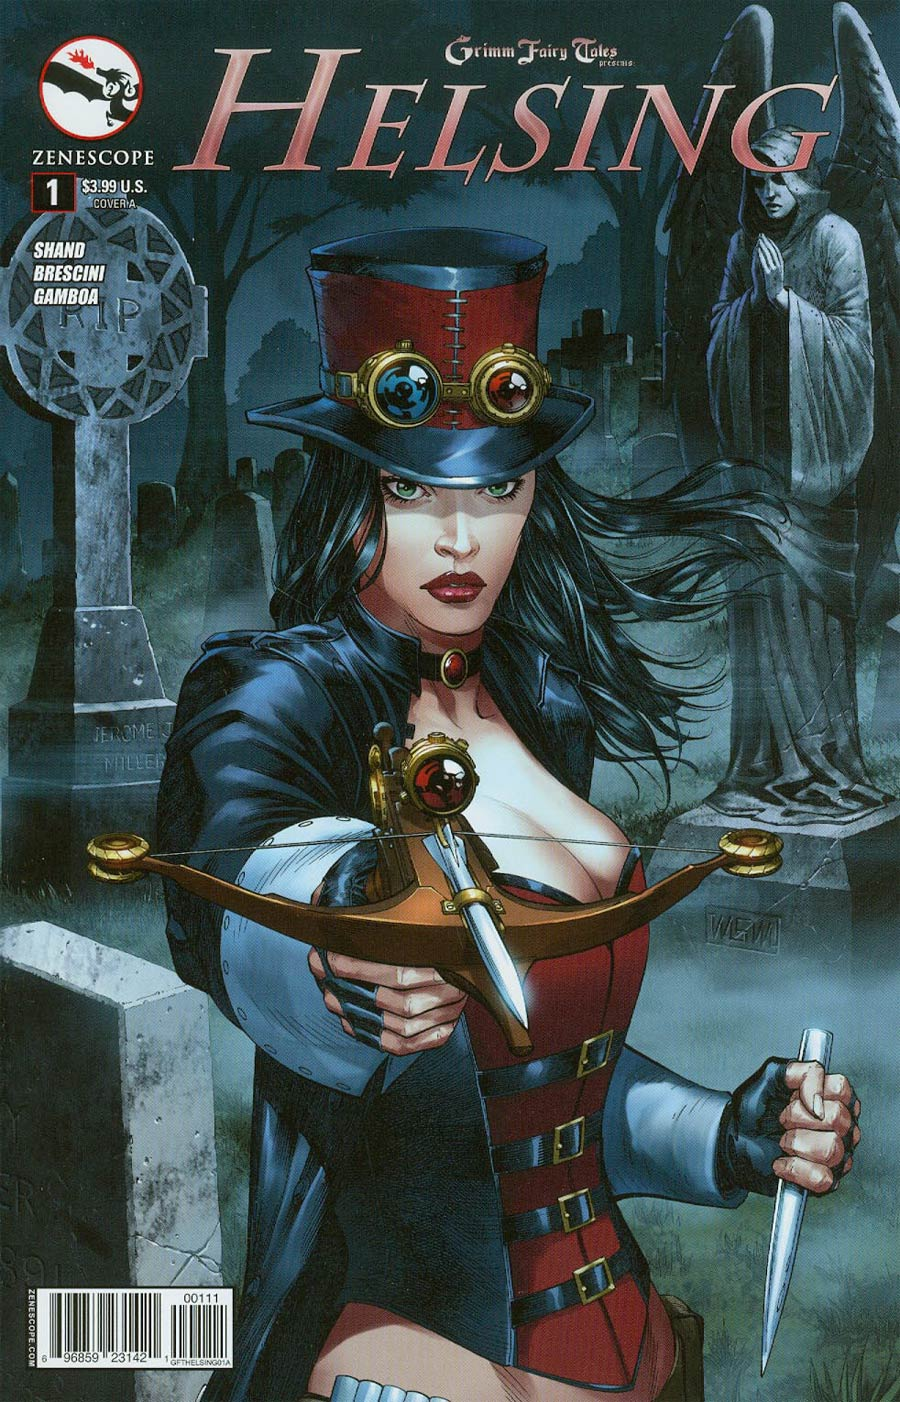 Grimm Fairy Tales Presents Helsing #1 Cover A Mike S Miller